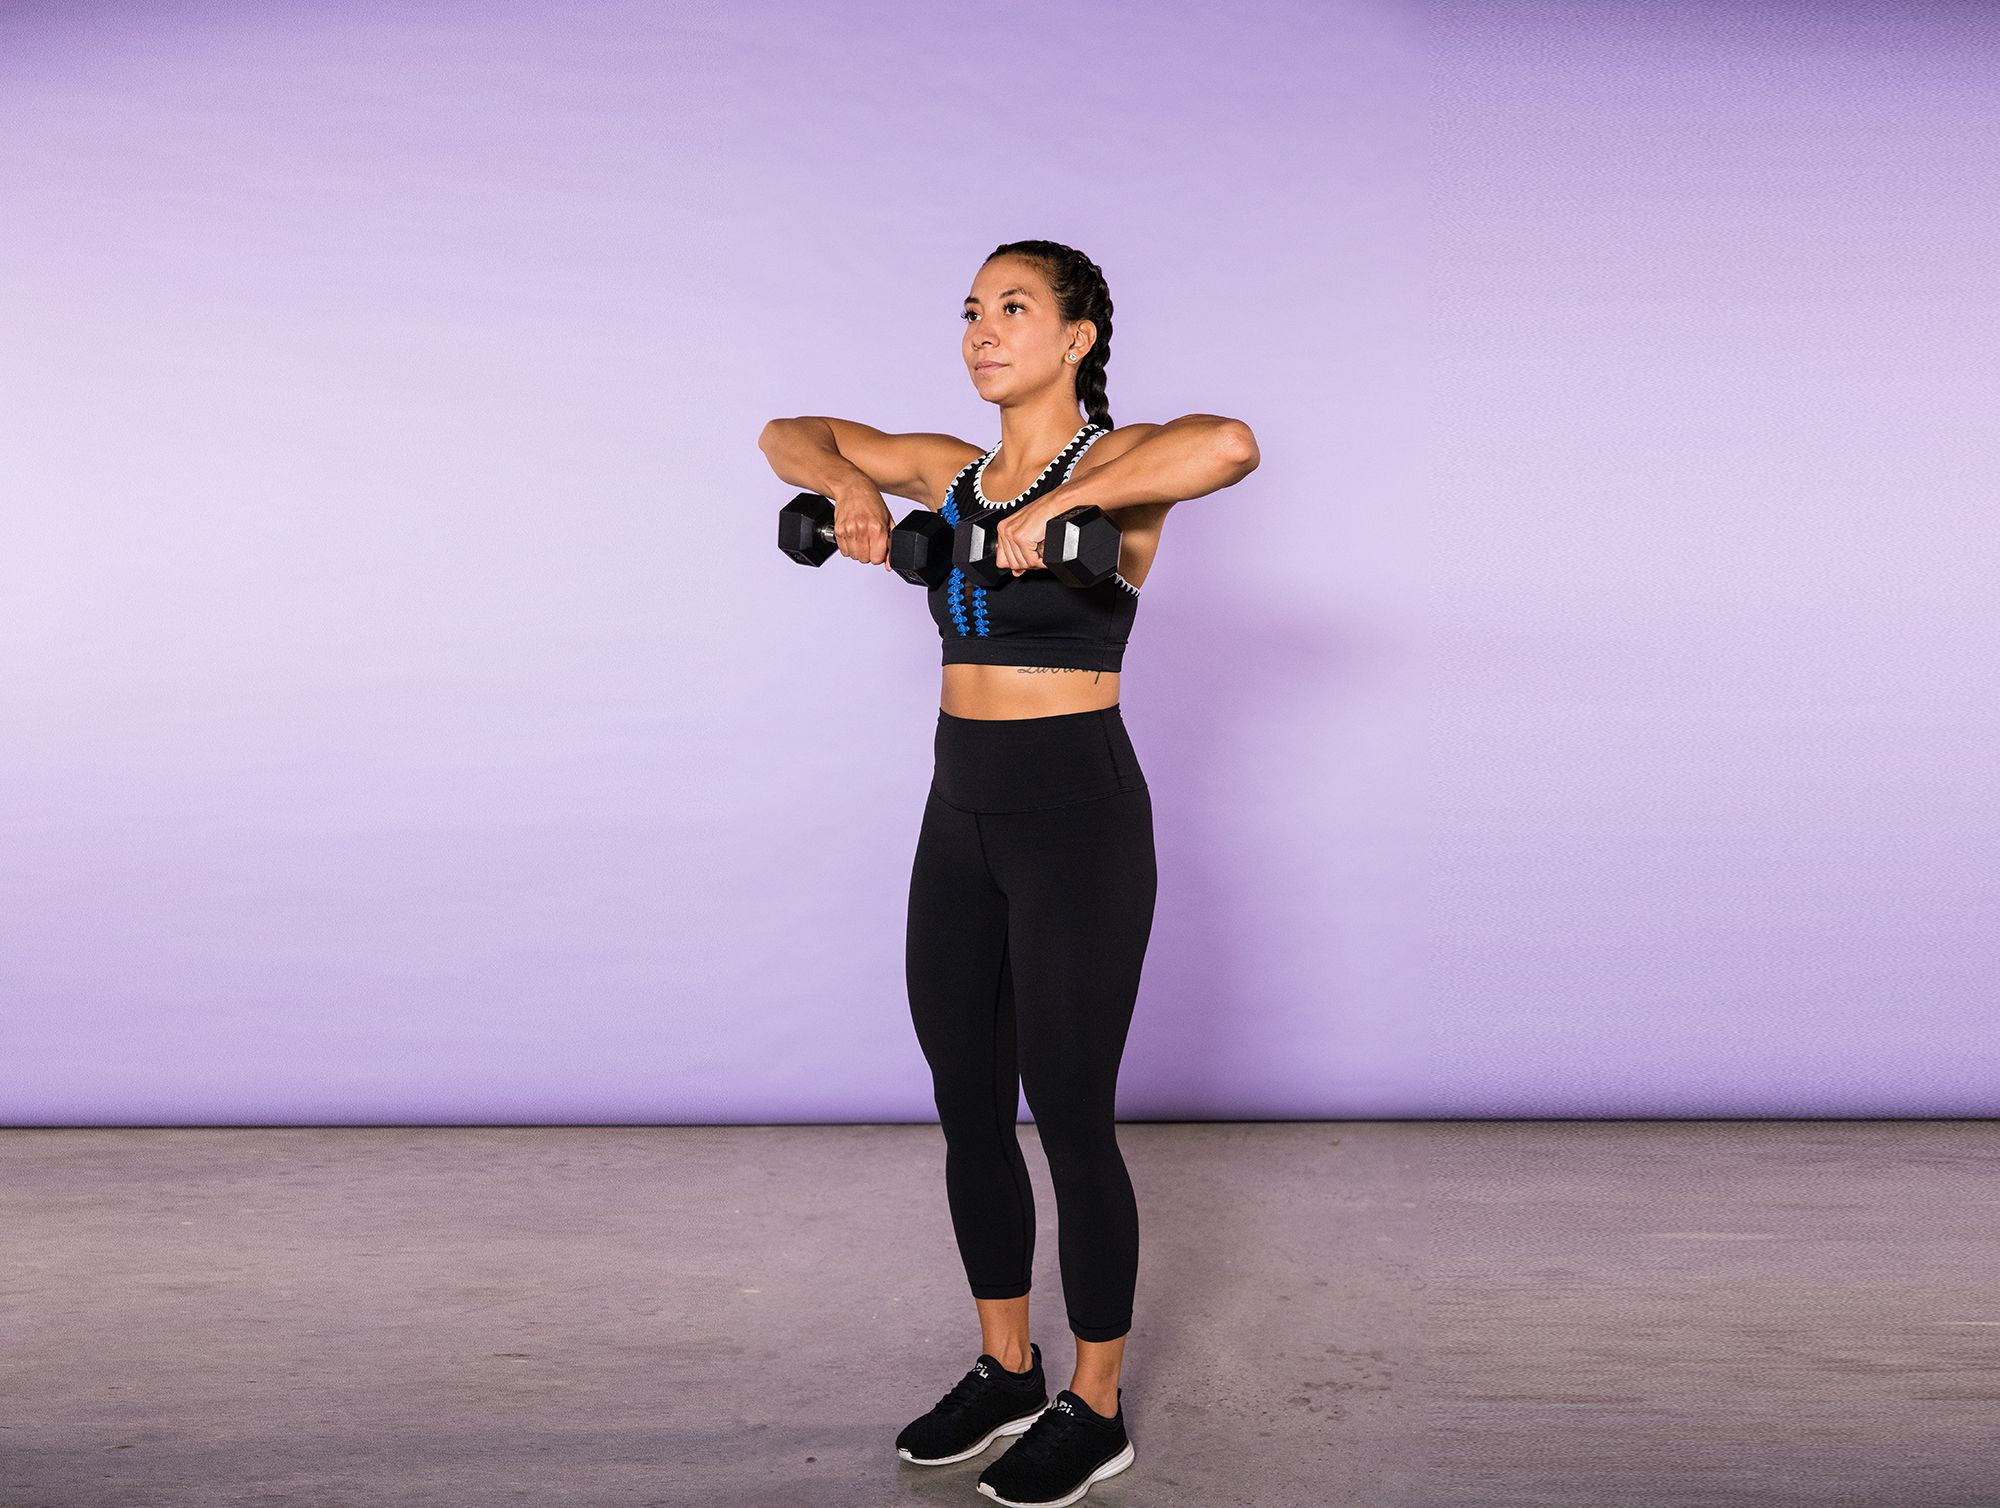 The 17 Best Exercises for Strong and Sculpted Arms